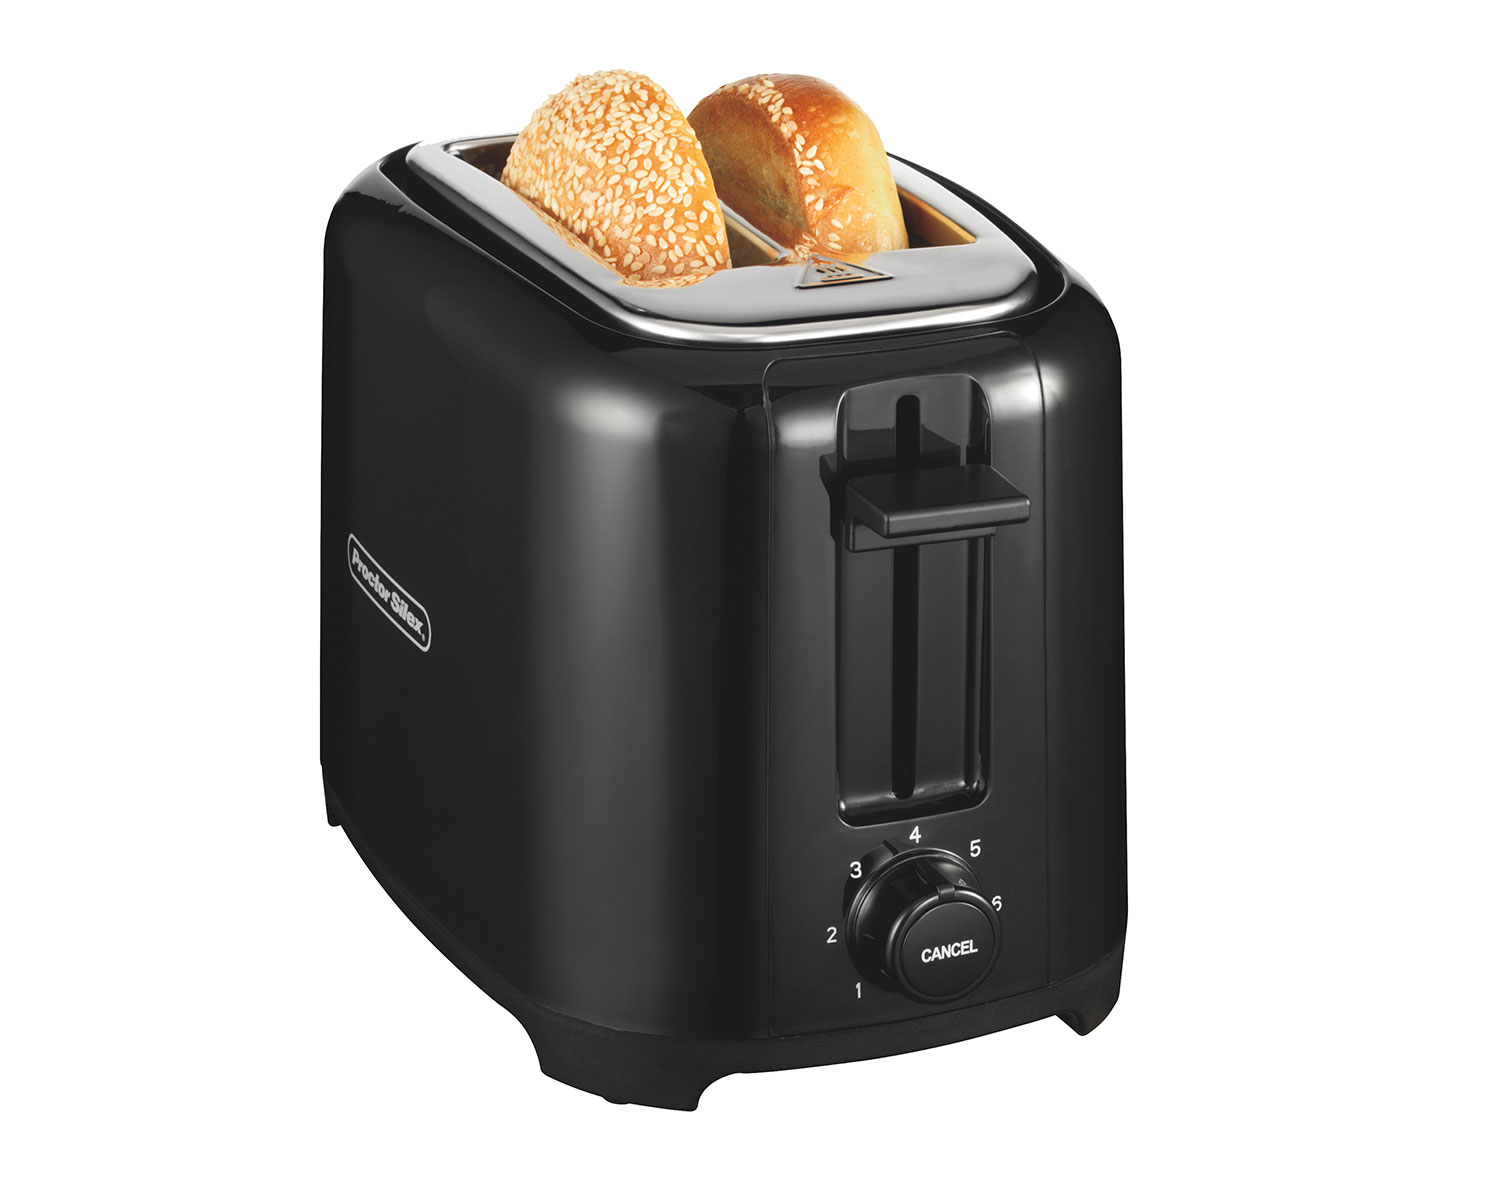 Durable Wide Slot Toaster - 22215